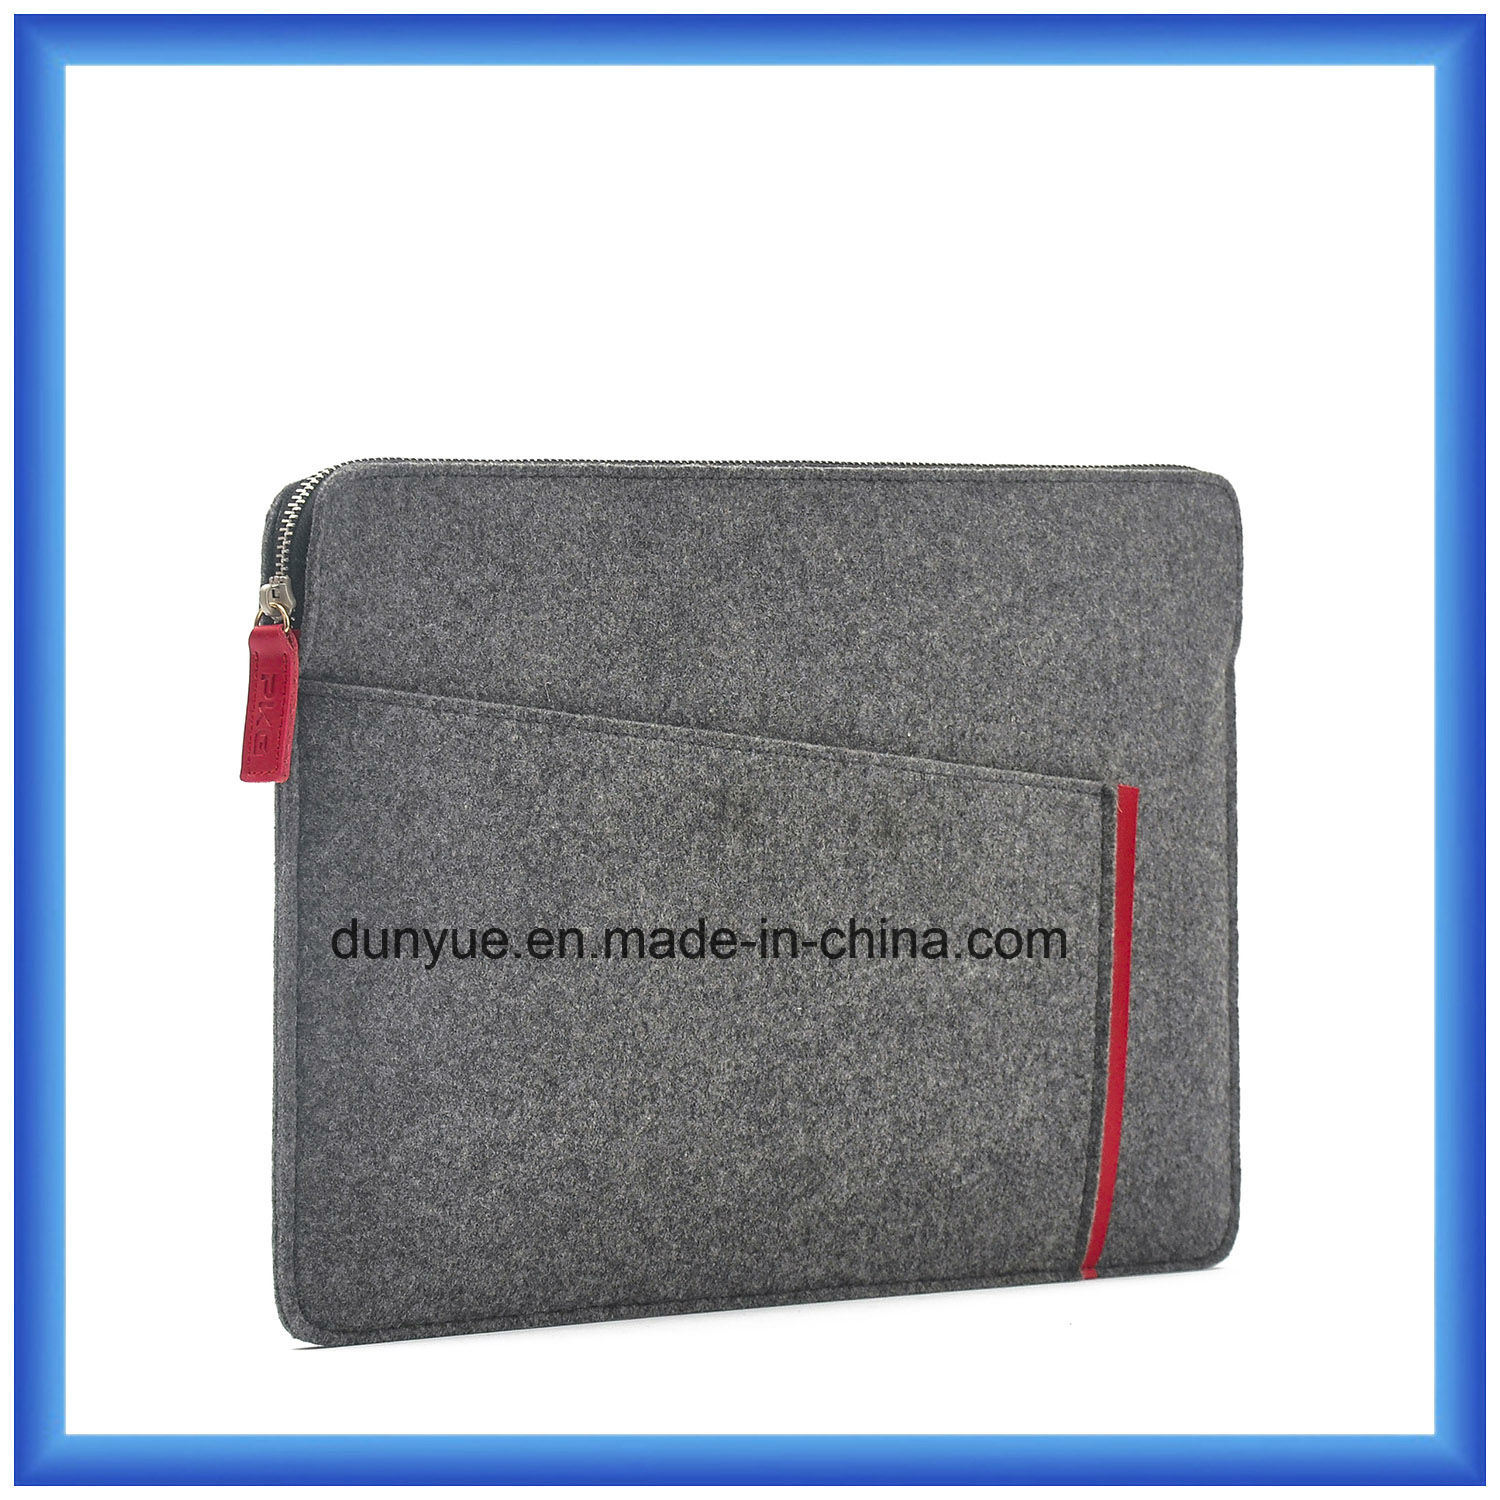 New Fashion Eco-Friendly Material of 70% Content Wool Felt Laptop Briefcase Bag, Custom Portable Soft Laptop Bag with Zipper